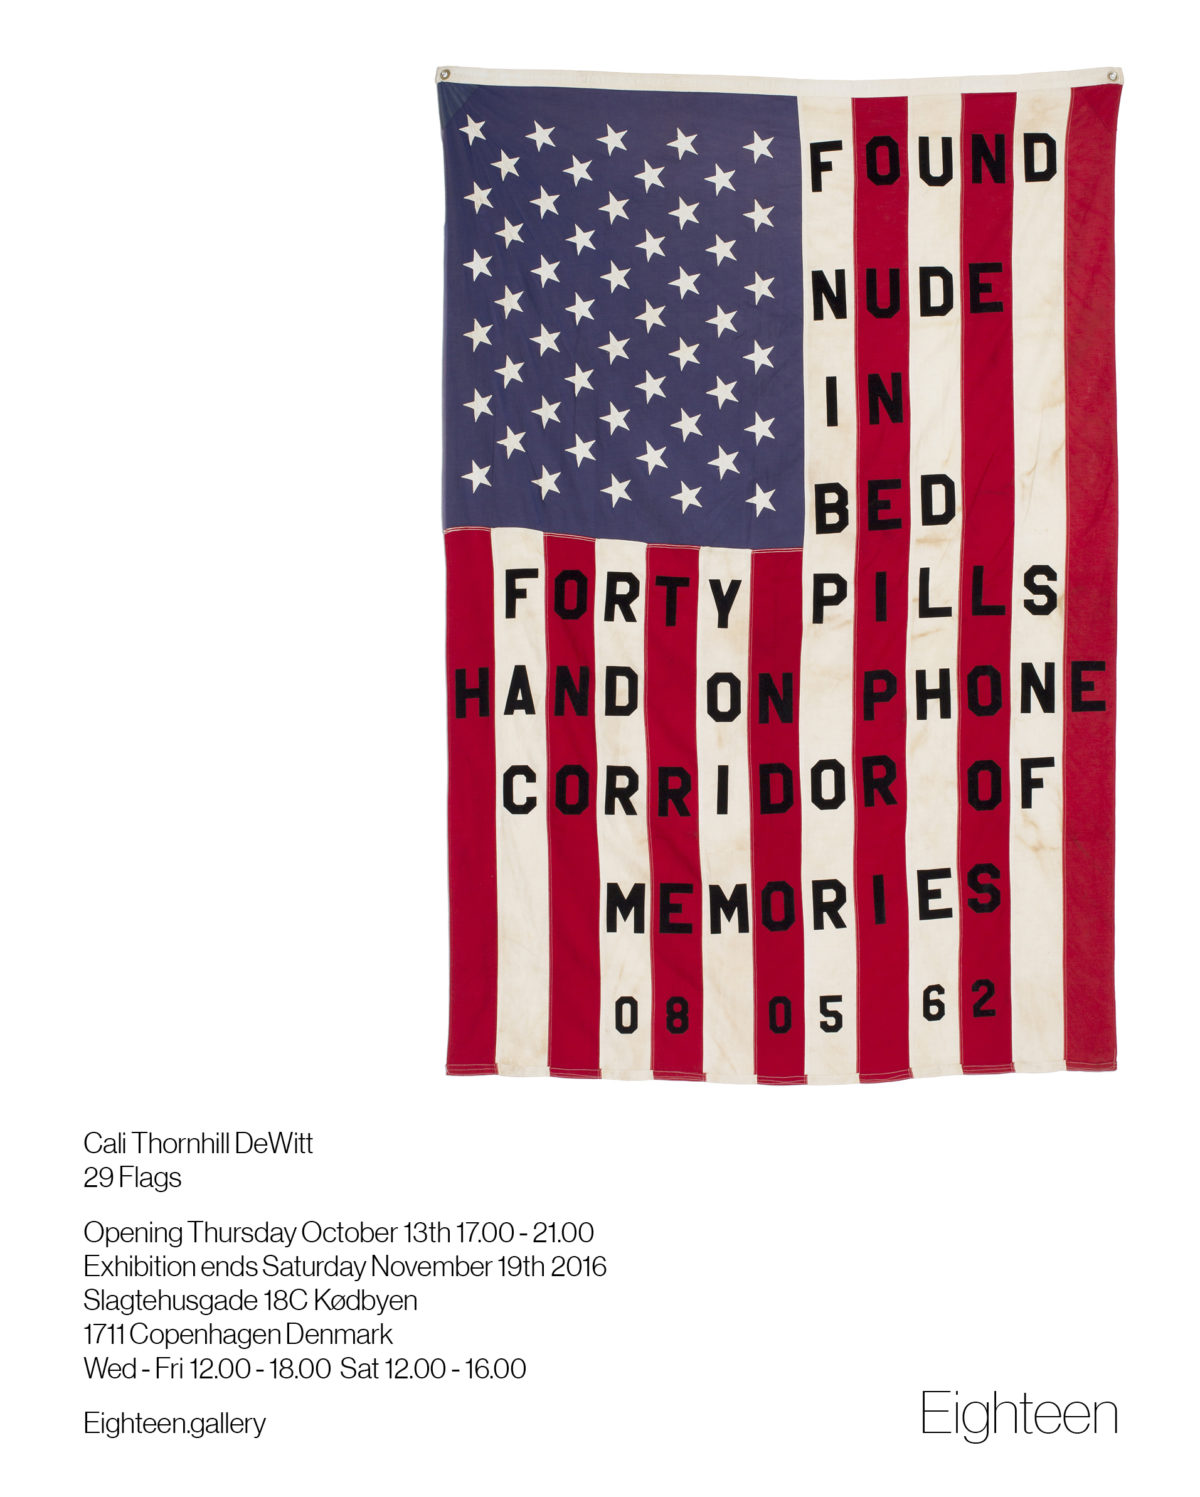 Opening reception: 29 Flags – a solo exhibition by Cali Thornhill DeWitt